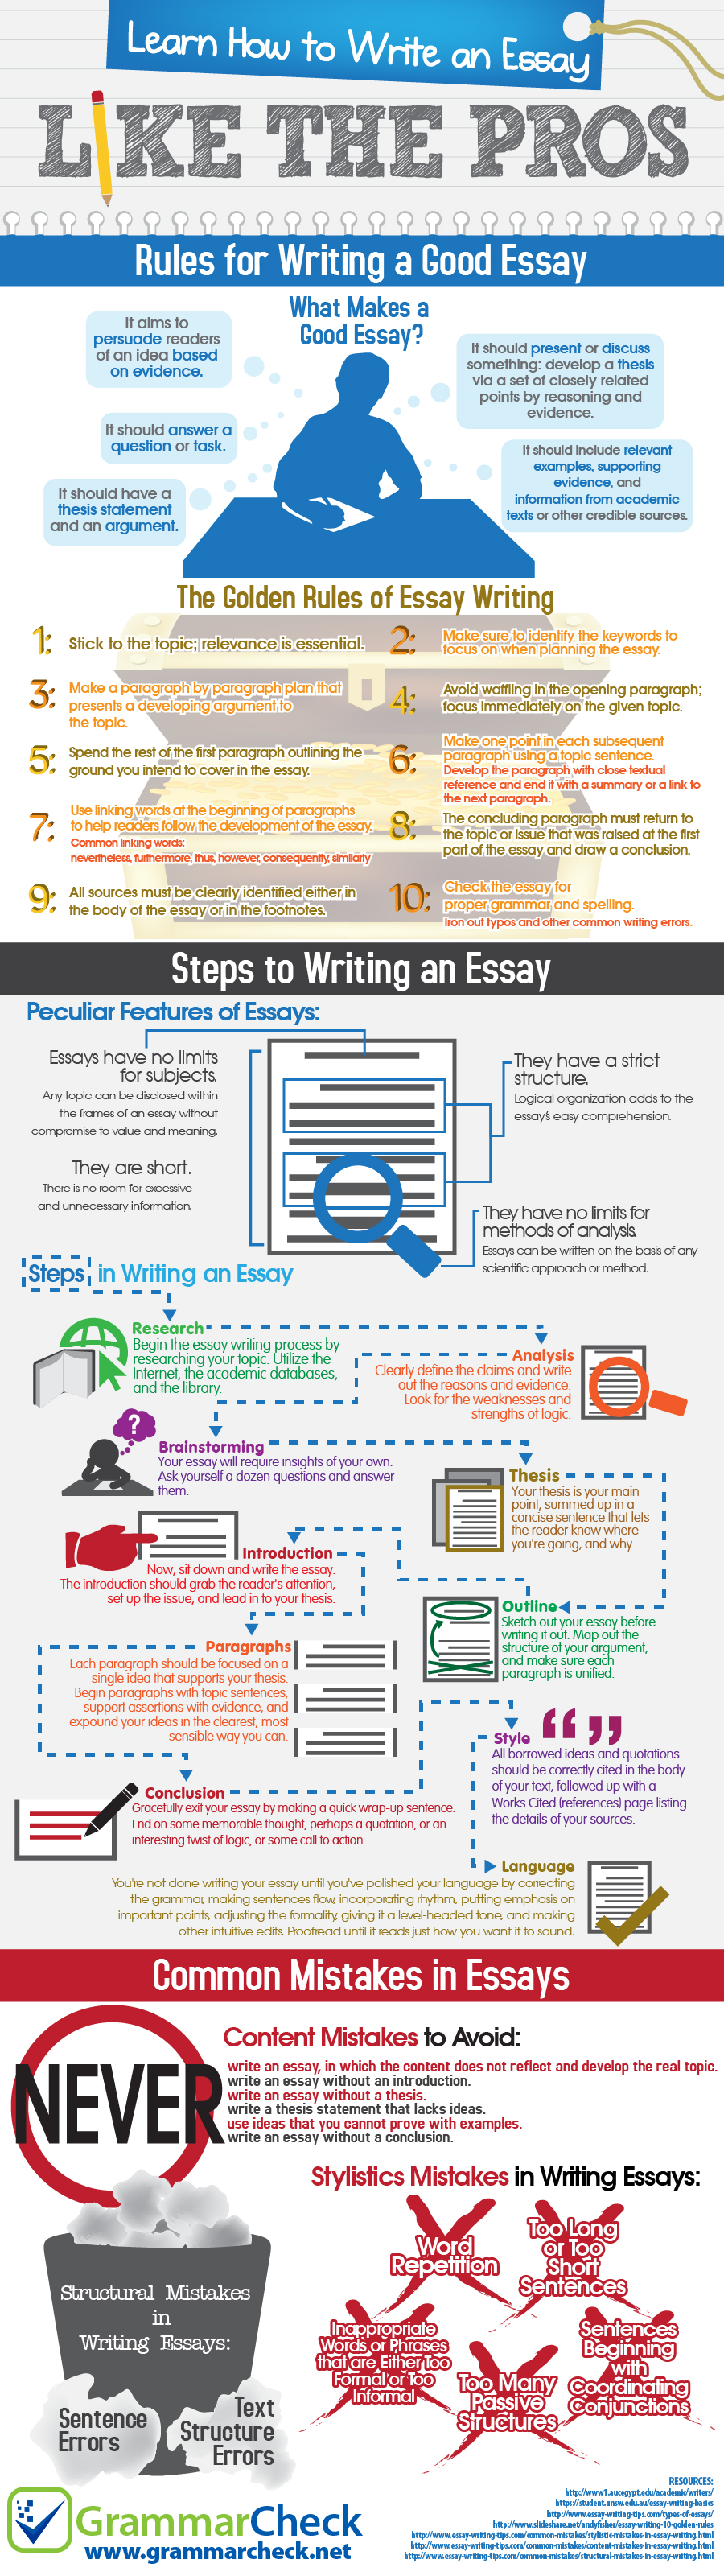 essays uk essay writer uk write my essay uk custom law essay essay writer uk